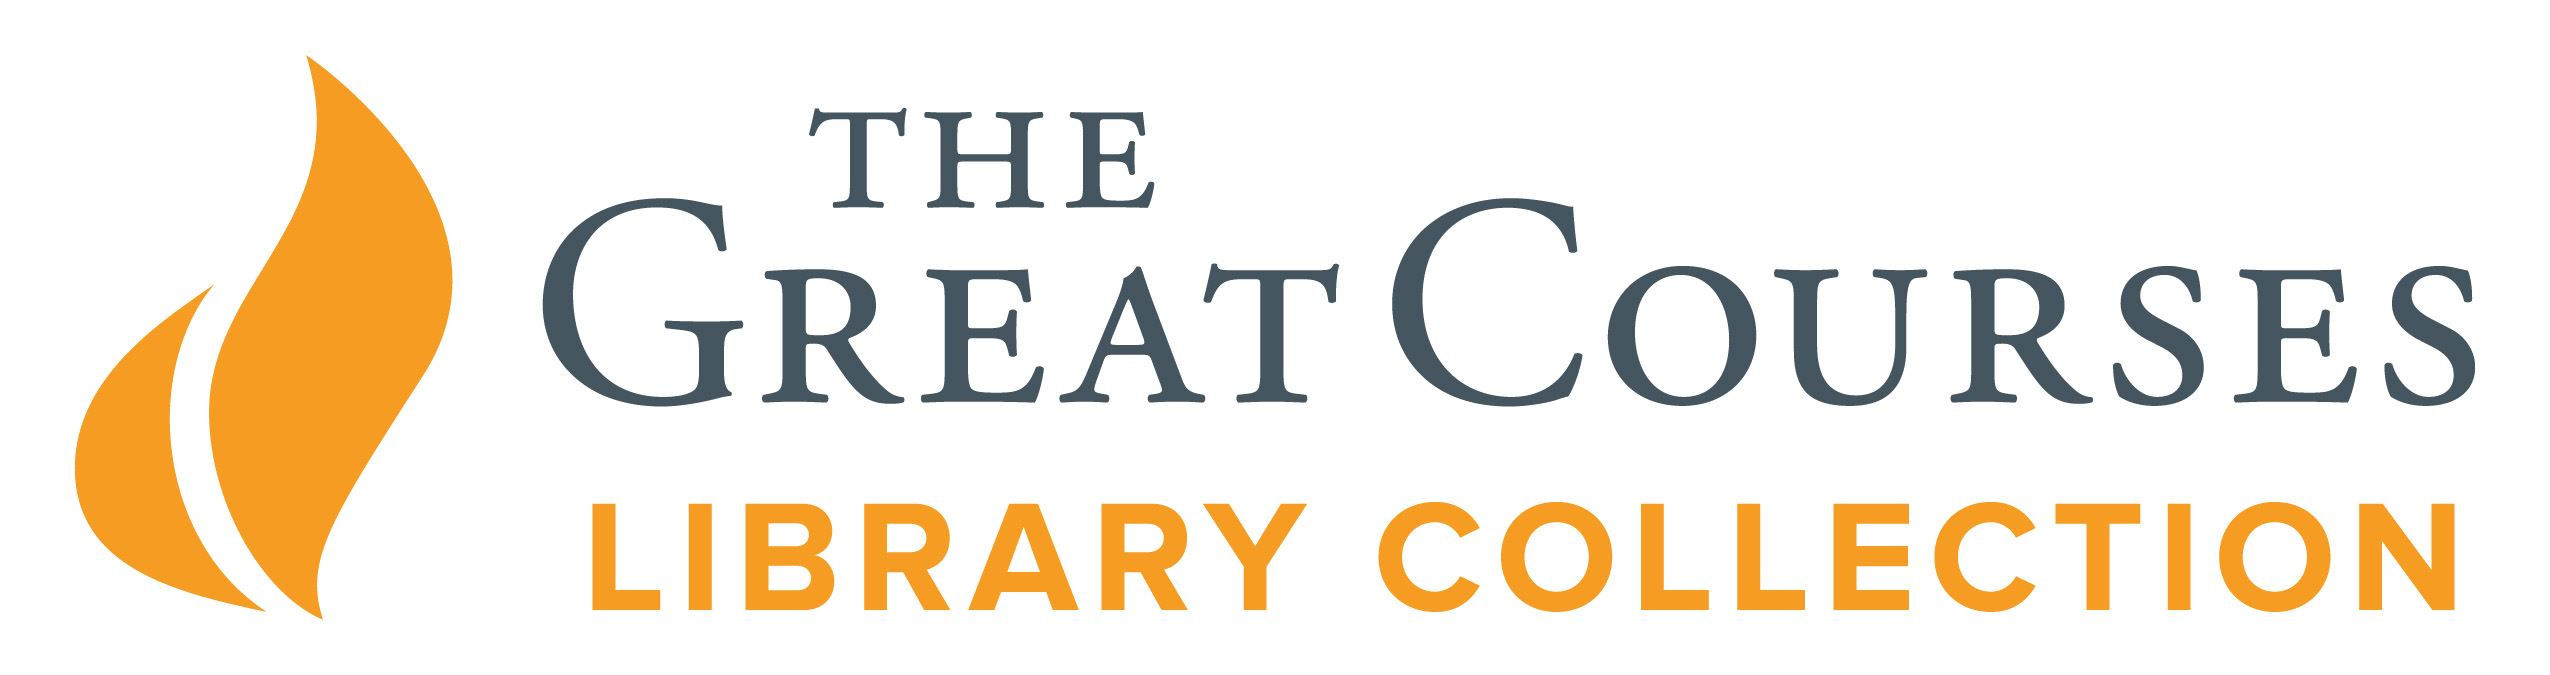 The Great Courses Logo Image Opens in new window